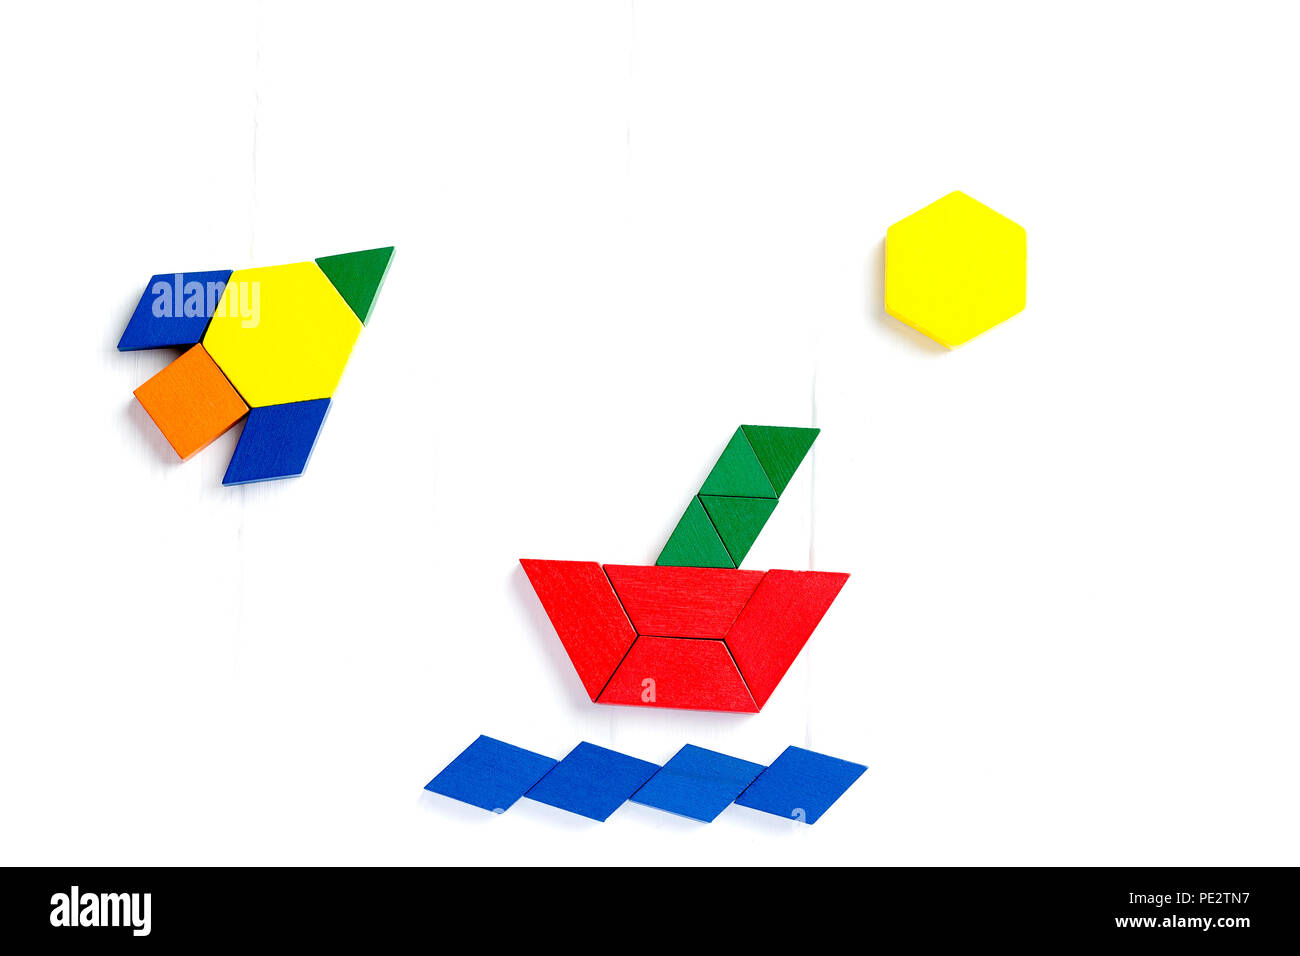 The ship sails on the sea waves, the sun shines brightly. Summer happy atmosphere. A child plays with colored blocks constructs a model on a light woo - Stock Image